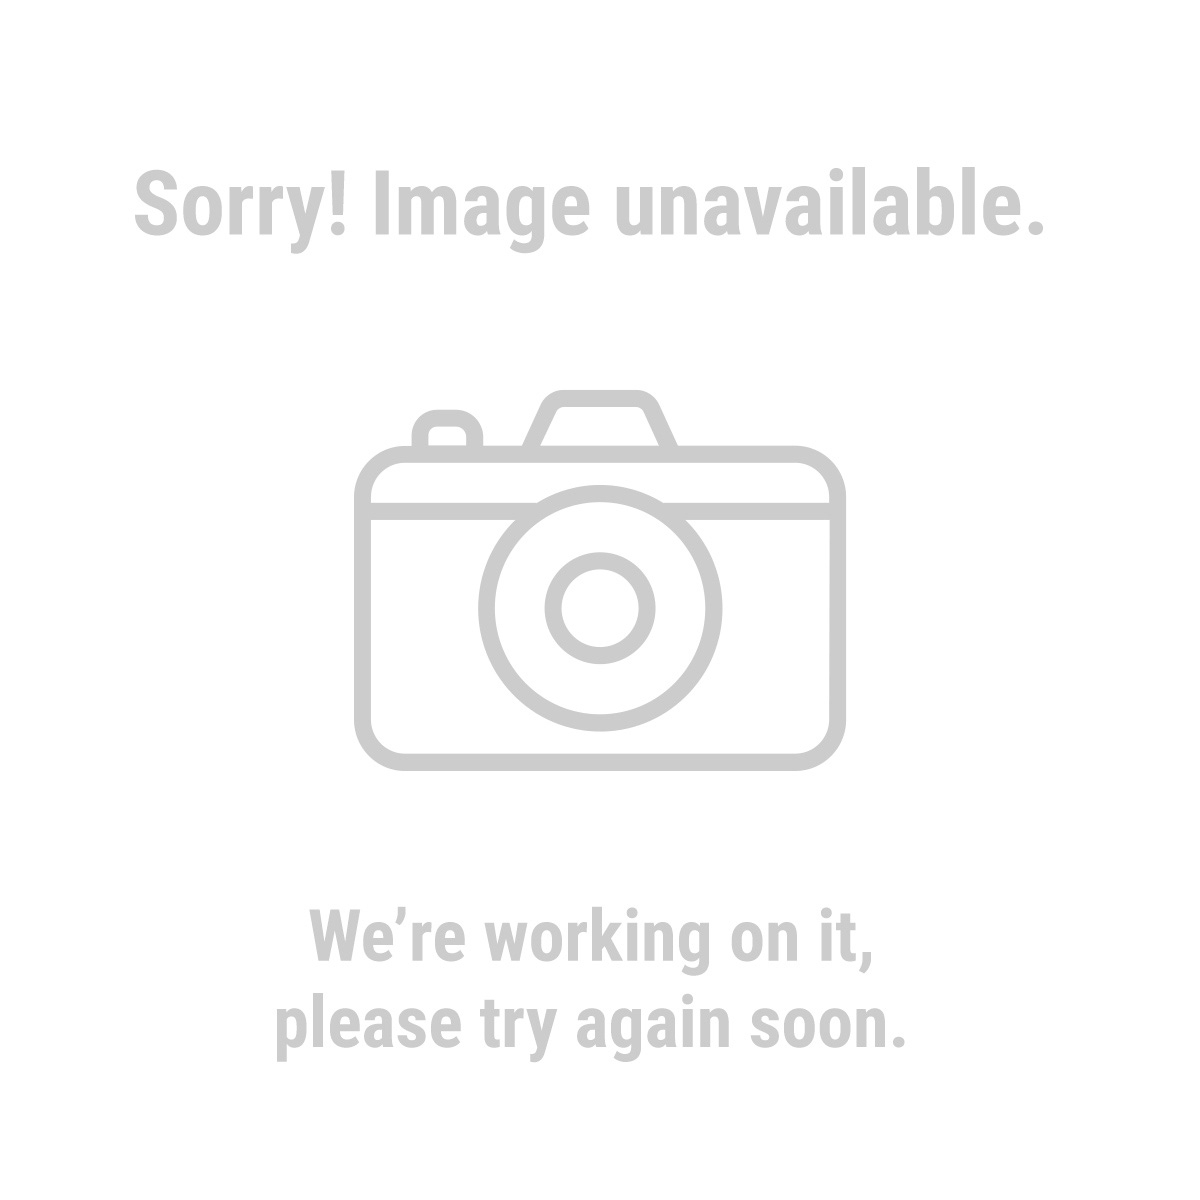 10 Piece 1 in. Drive Metric Impact Socket Set